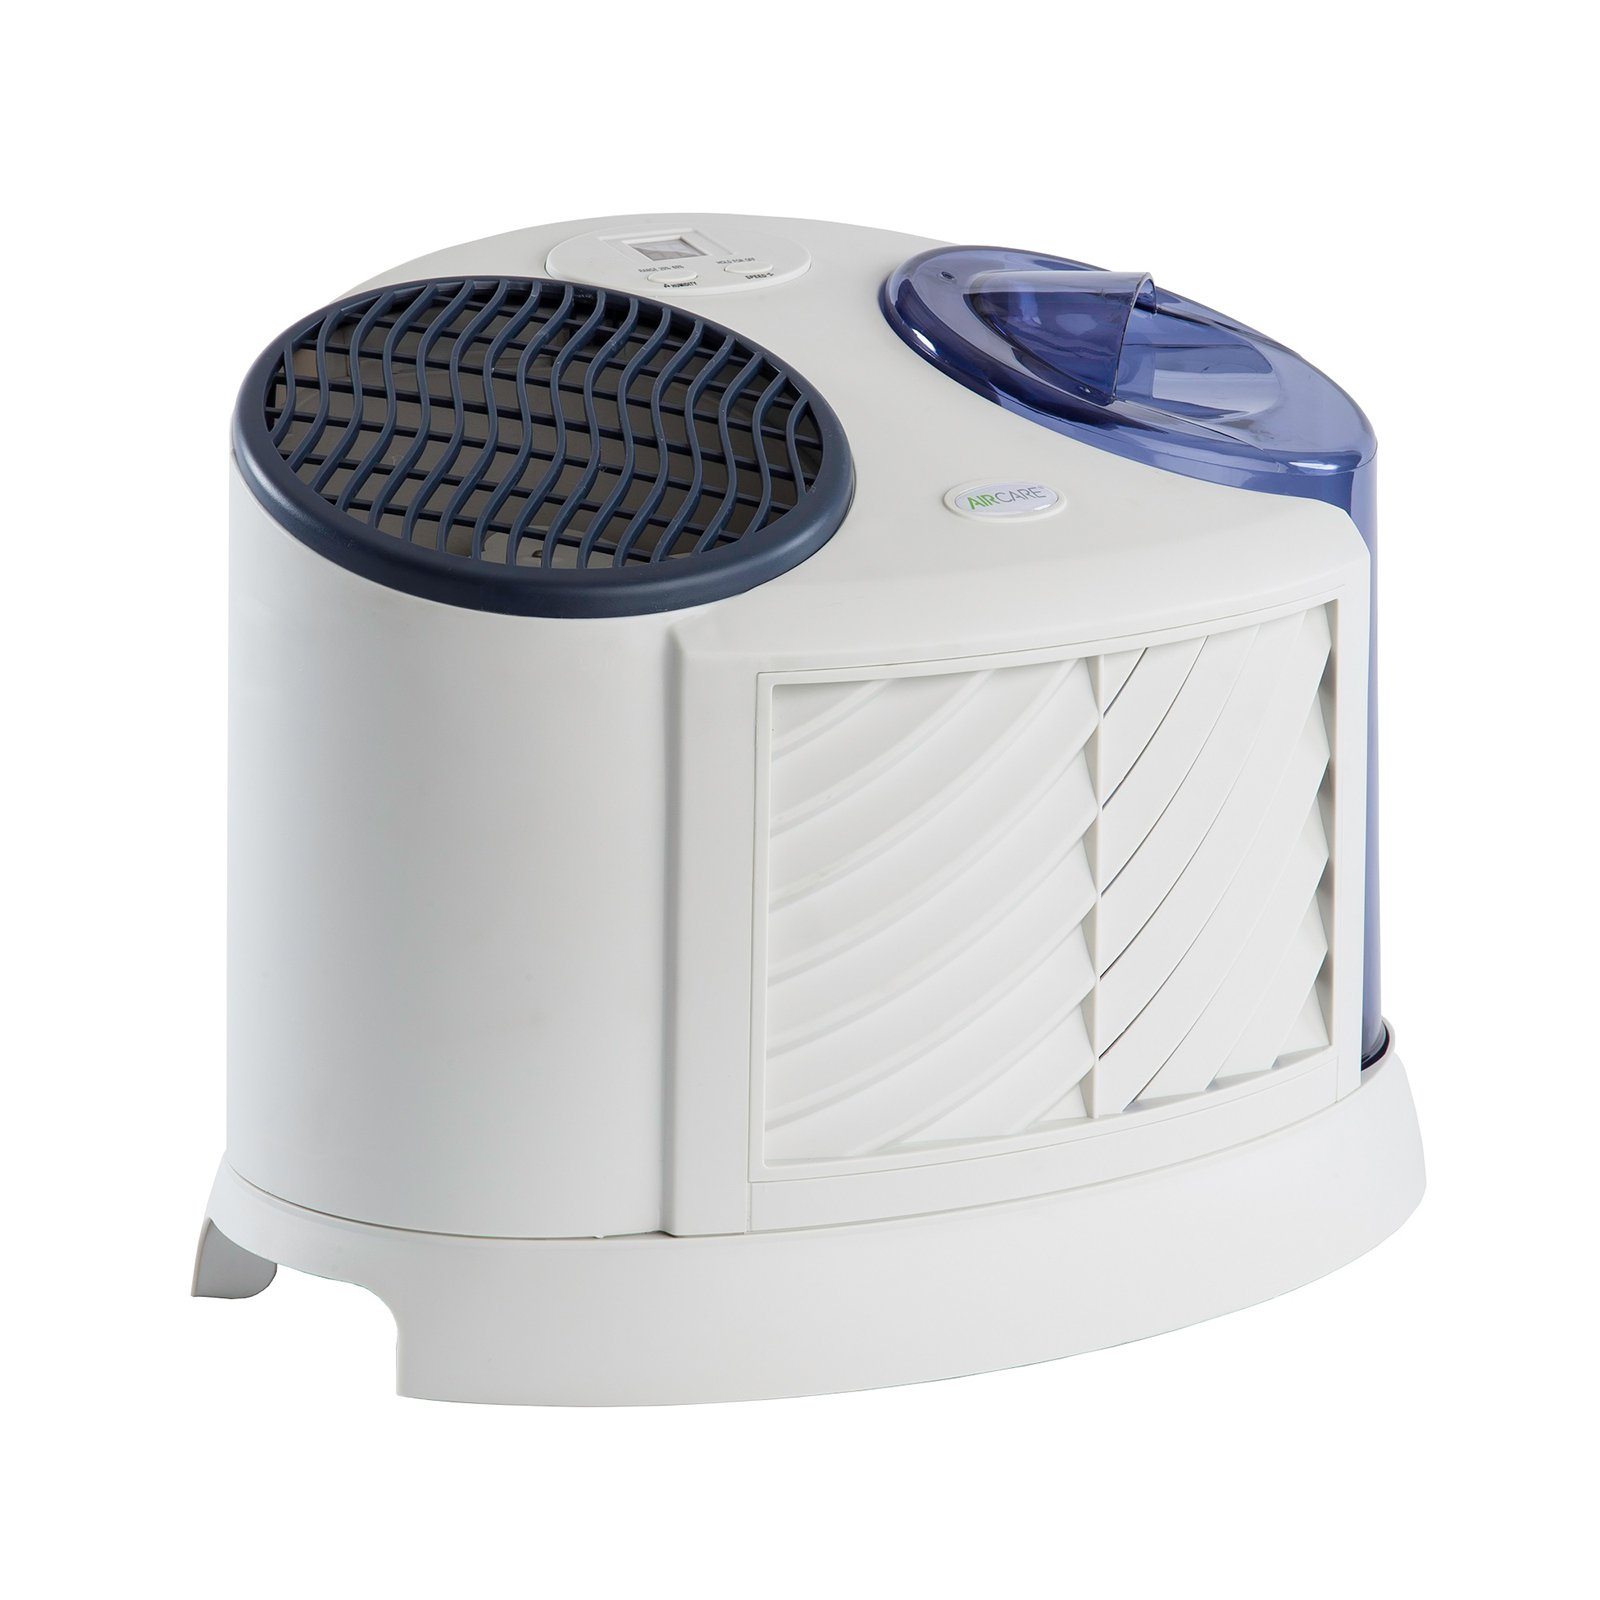 AIRCARE 7D6100 Table Top Evaporative Humidifier